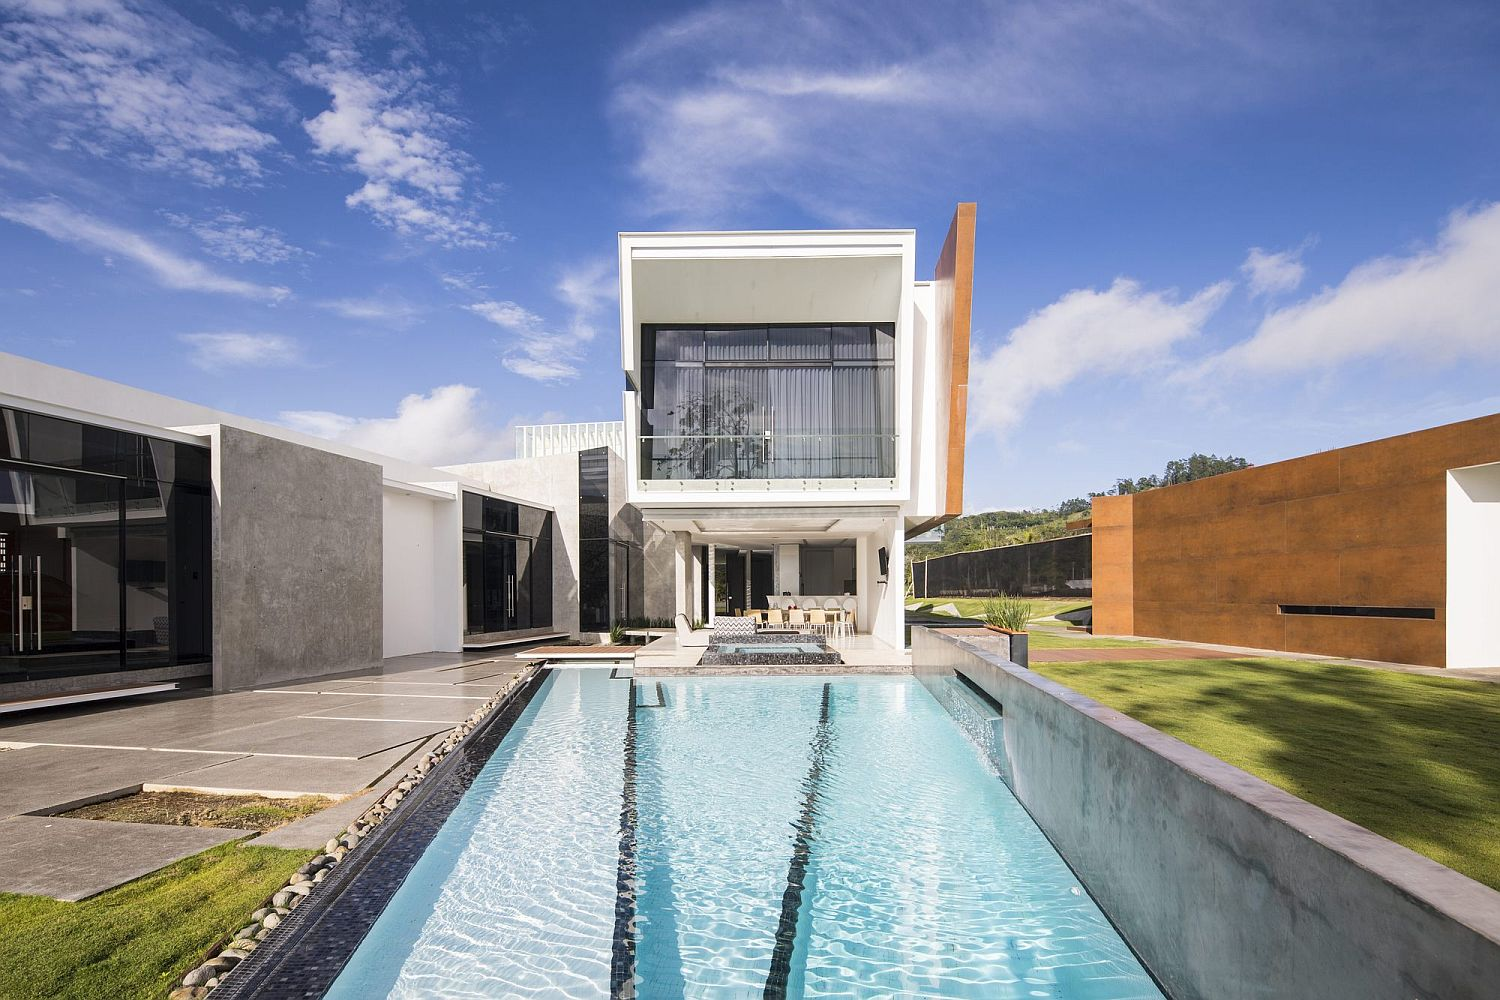 Geometric style and facade of the contemporary house in Palmares